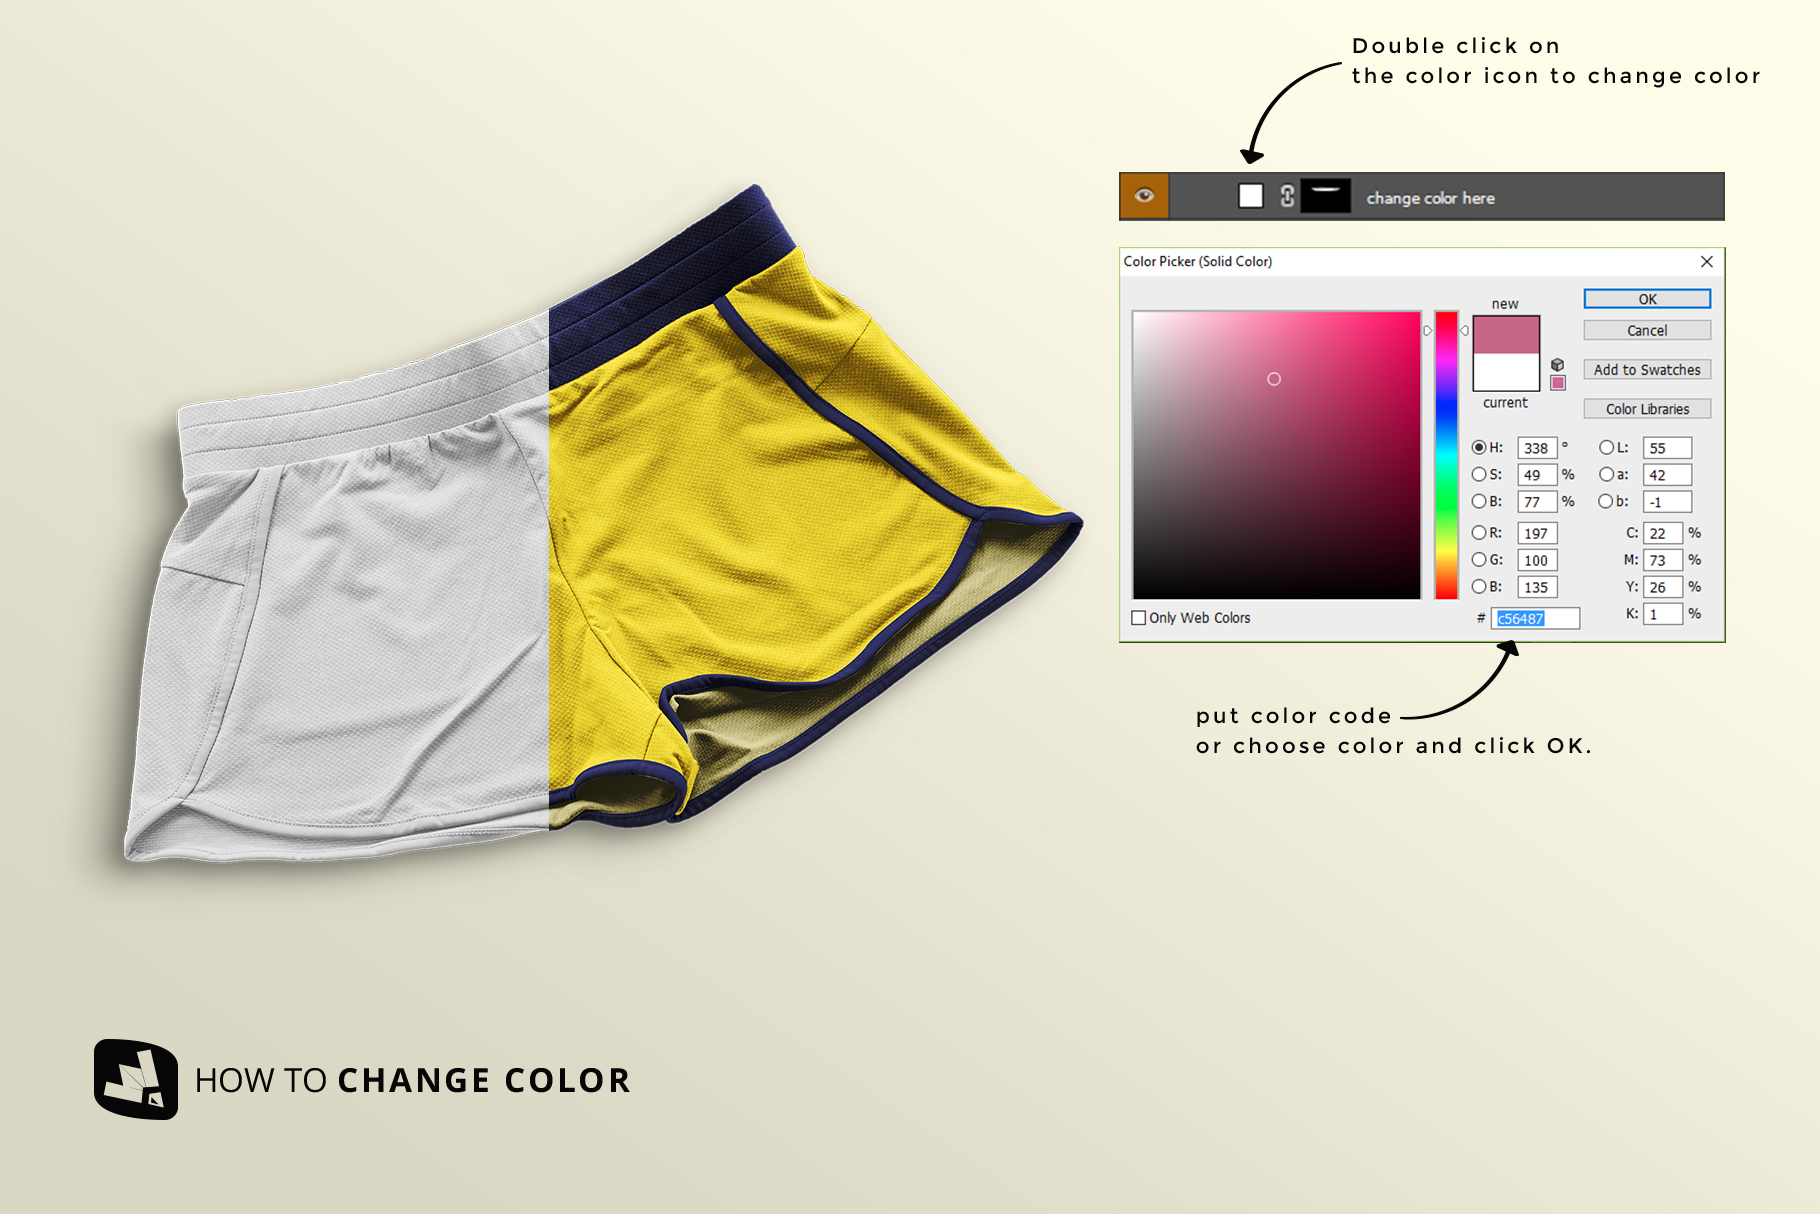 how to change color of the female sportswear shorts mockup